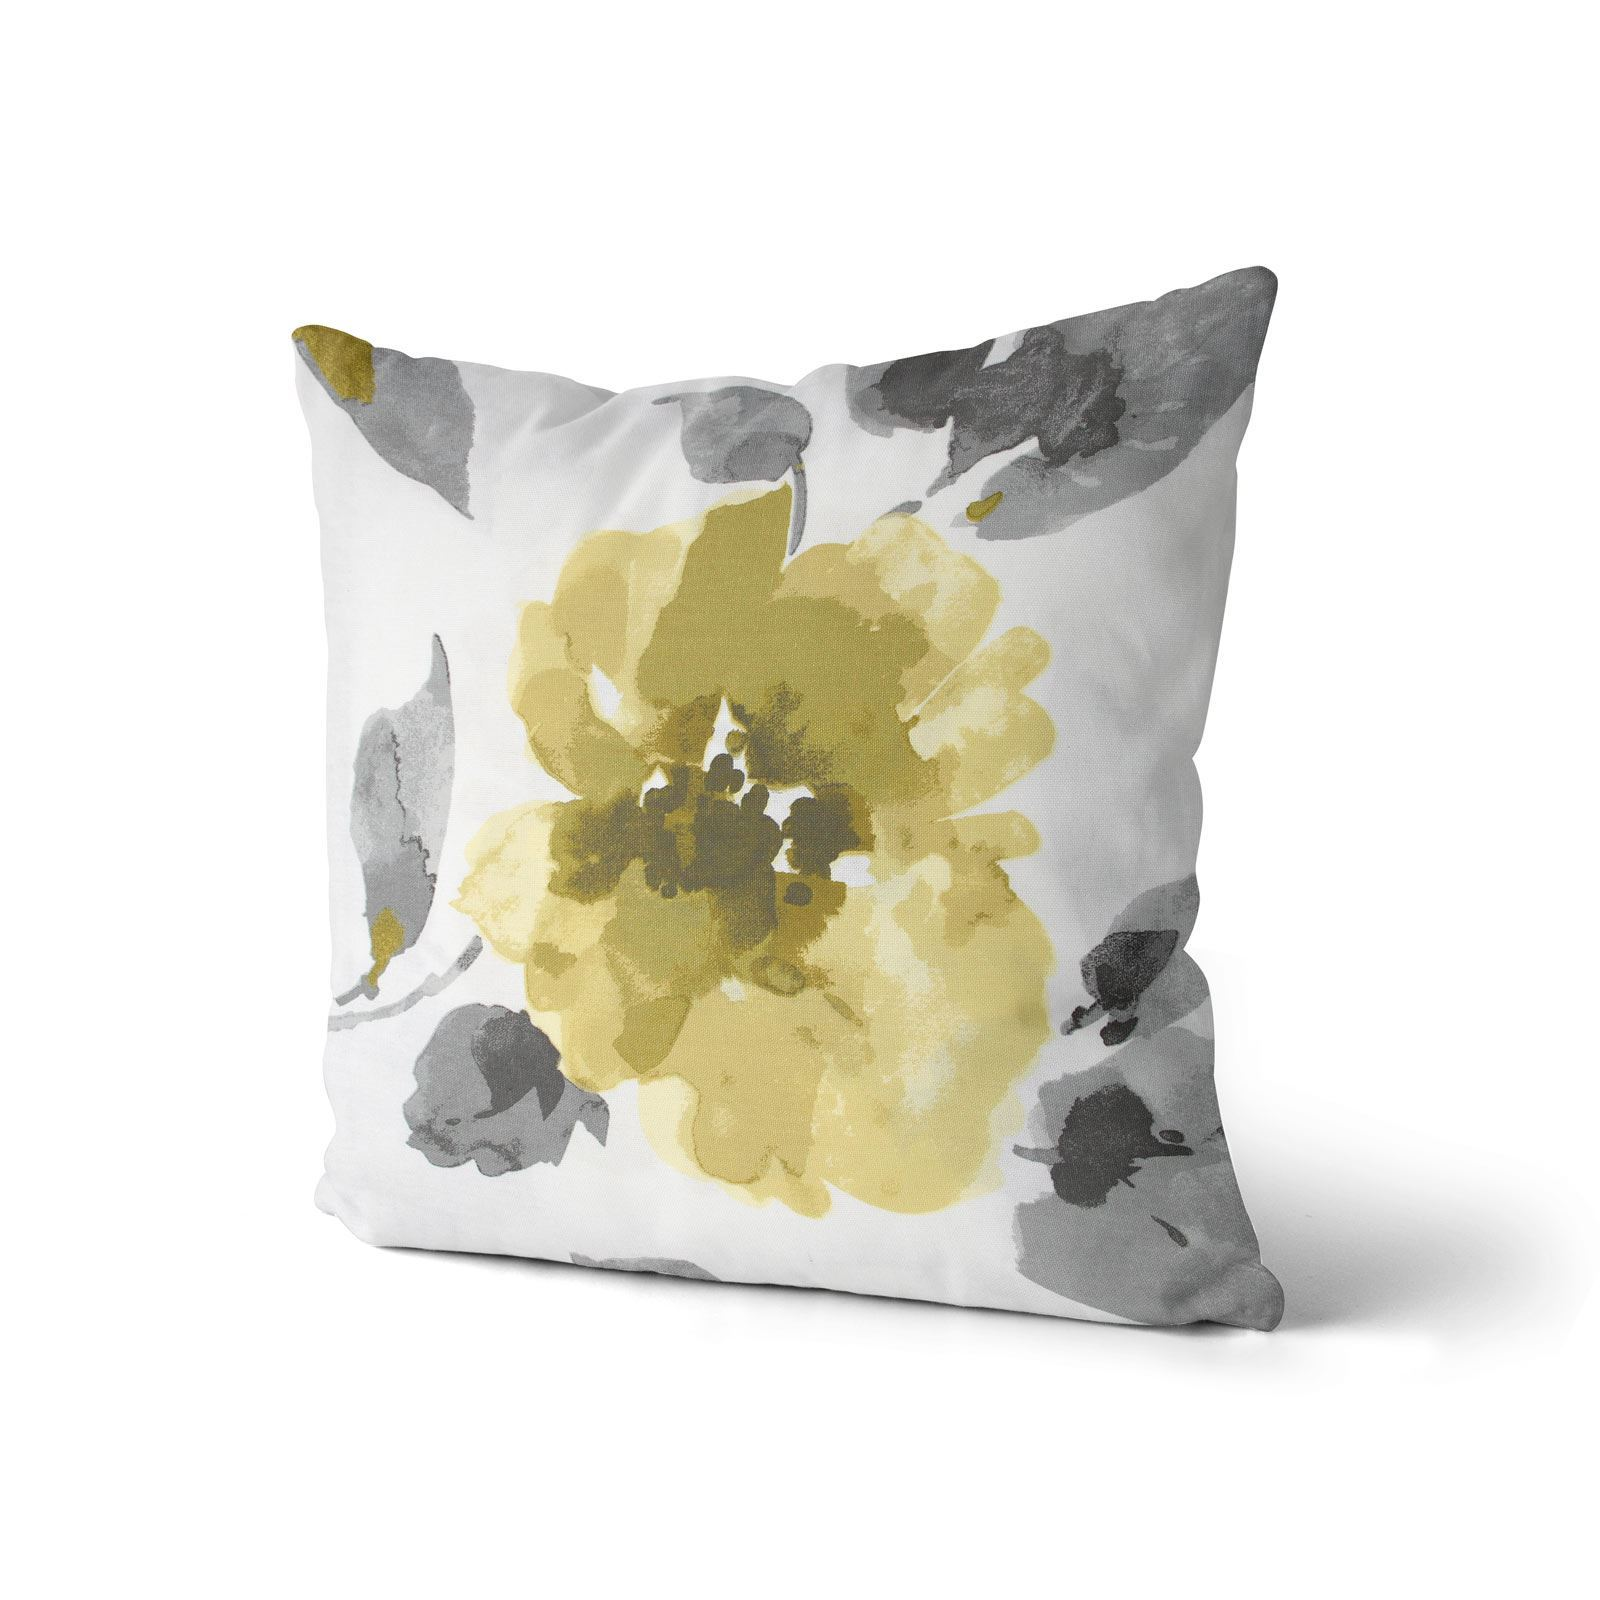 Grey-Ochre-Mustard-Cushion-Cover-Collection-17-034-18-034-Covers-Filled-Cushions thumbnail 17